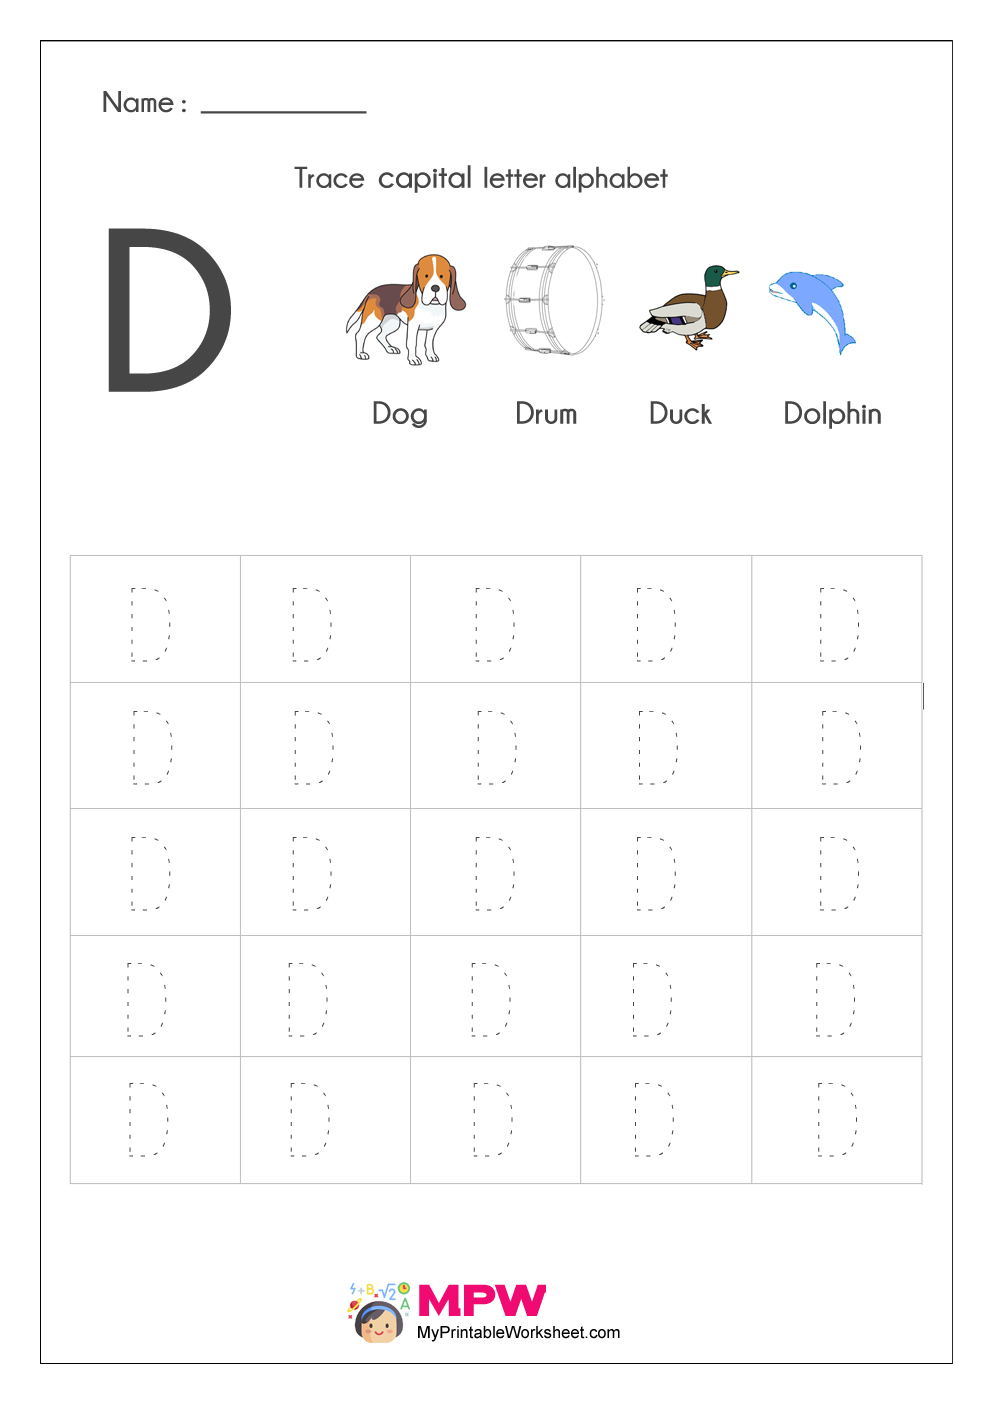 Alphabet Tracing Worksheets, Printable English Capital in D Letter Tracing